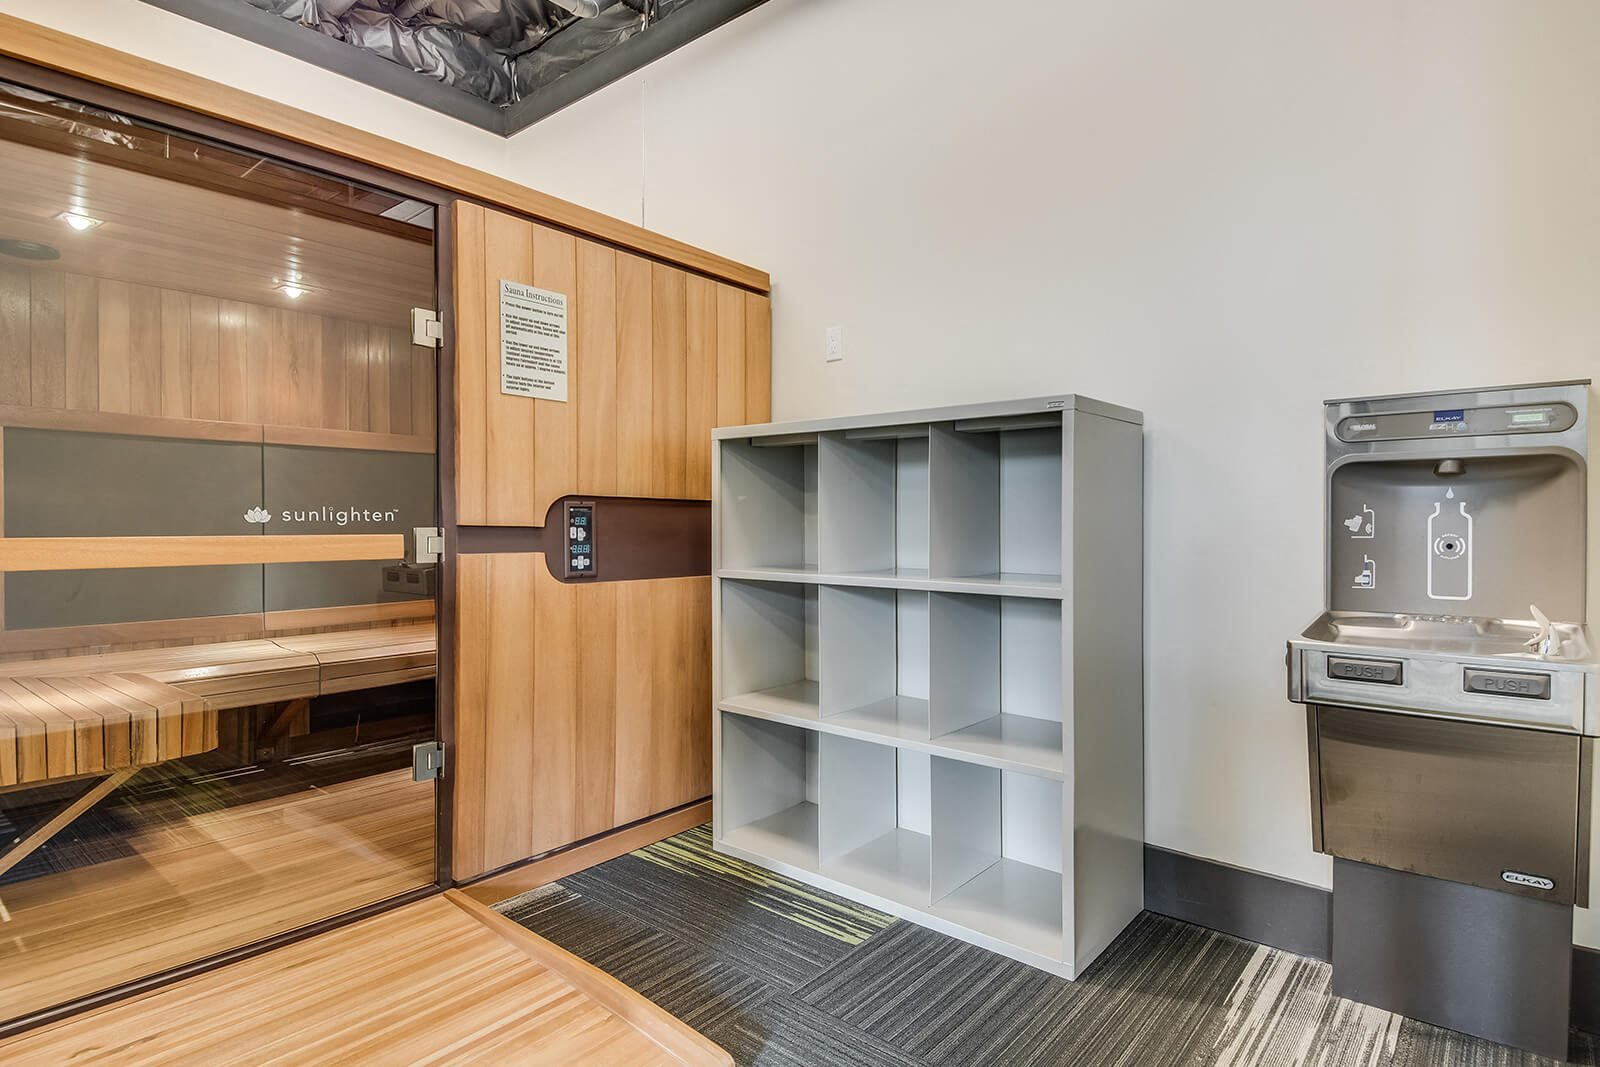 Sauna at Tera Apartments, 98033, WA